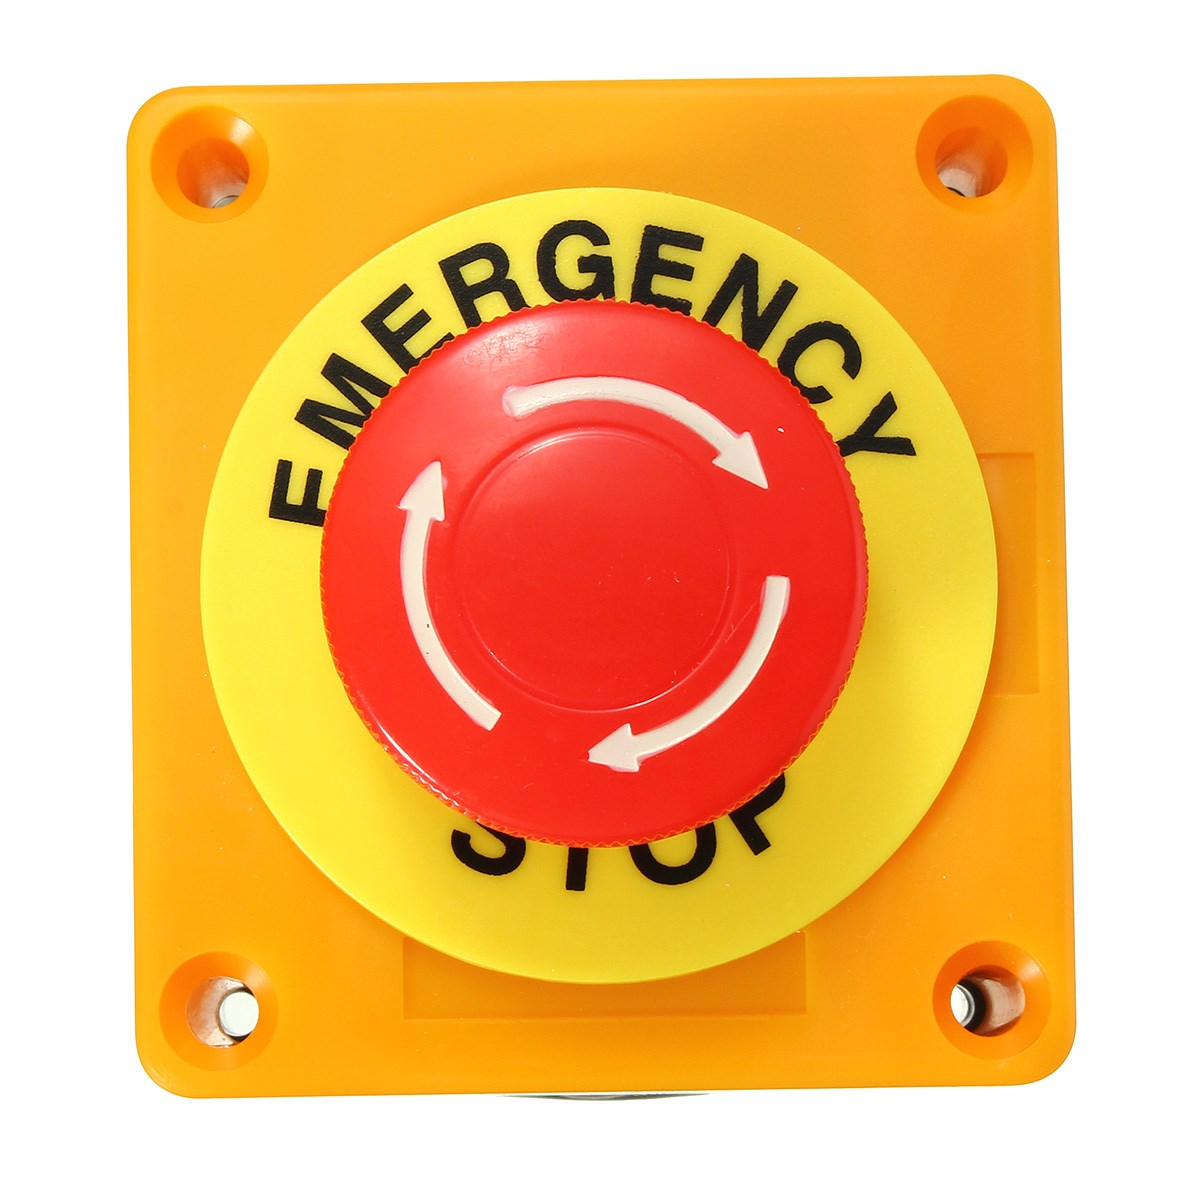 Emergency stop icon clipart emergency off - Switch 1 No 1 Nc 10a 660v Emergency Stop Push Button Switch Waterproof Self Locking Explosion